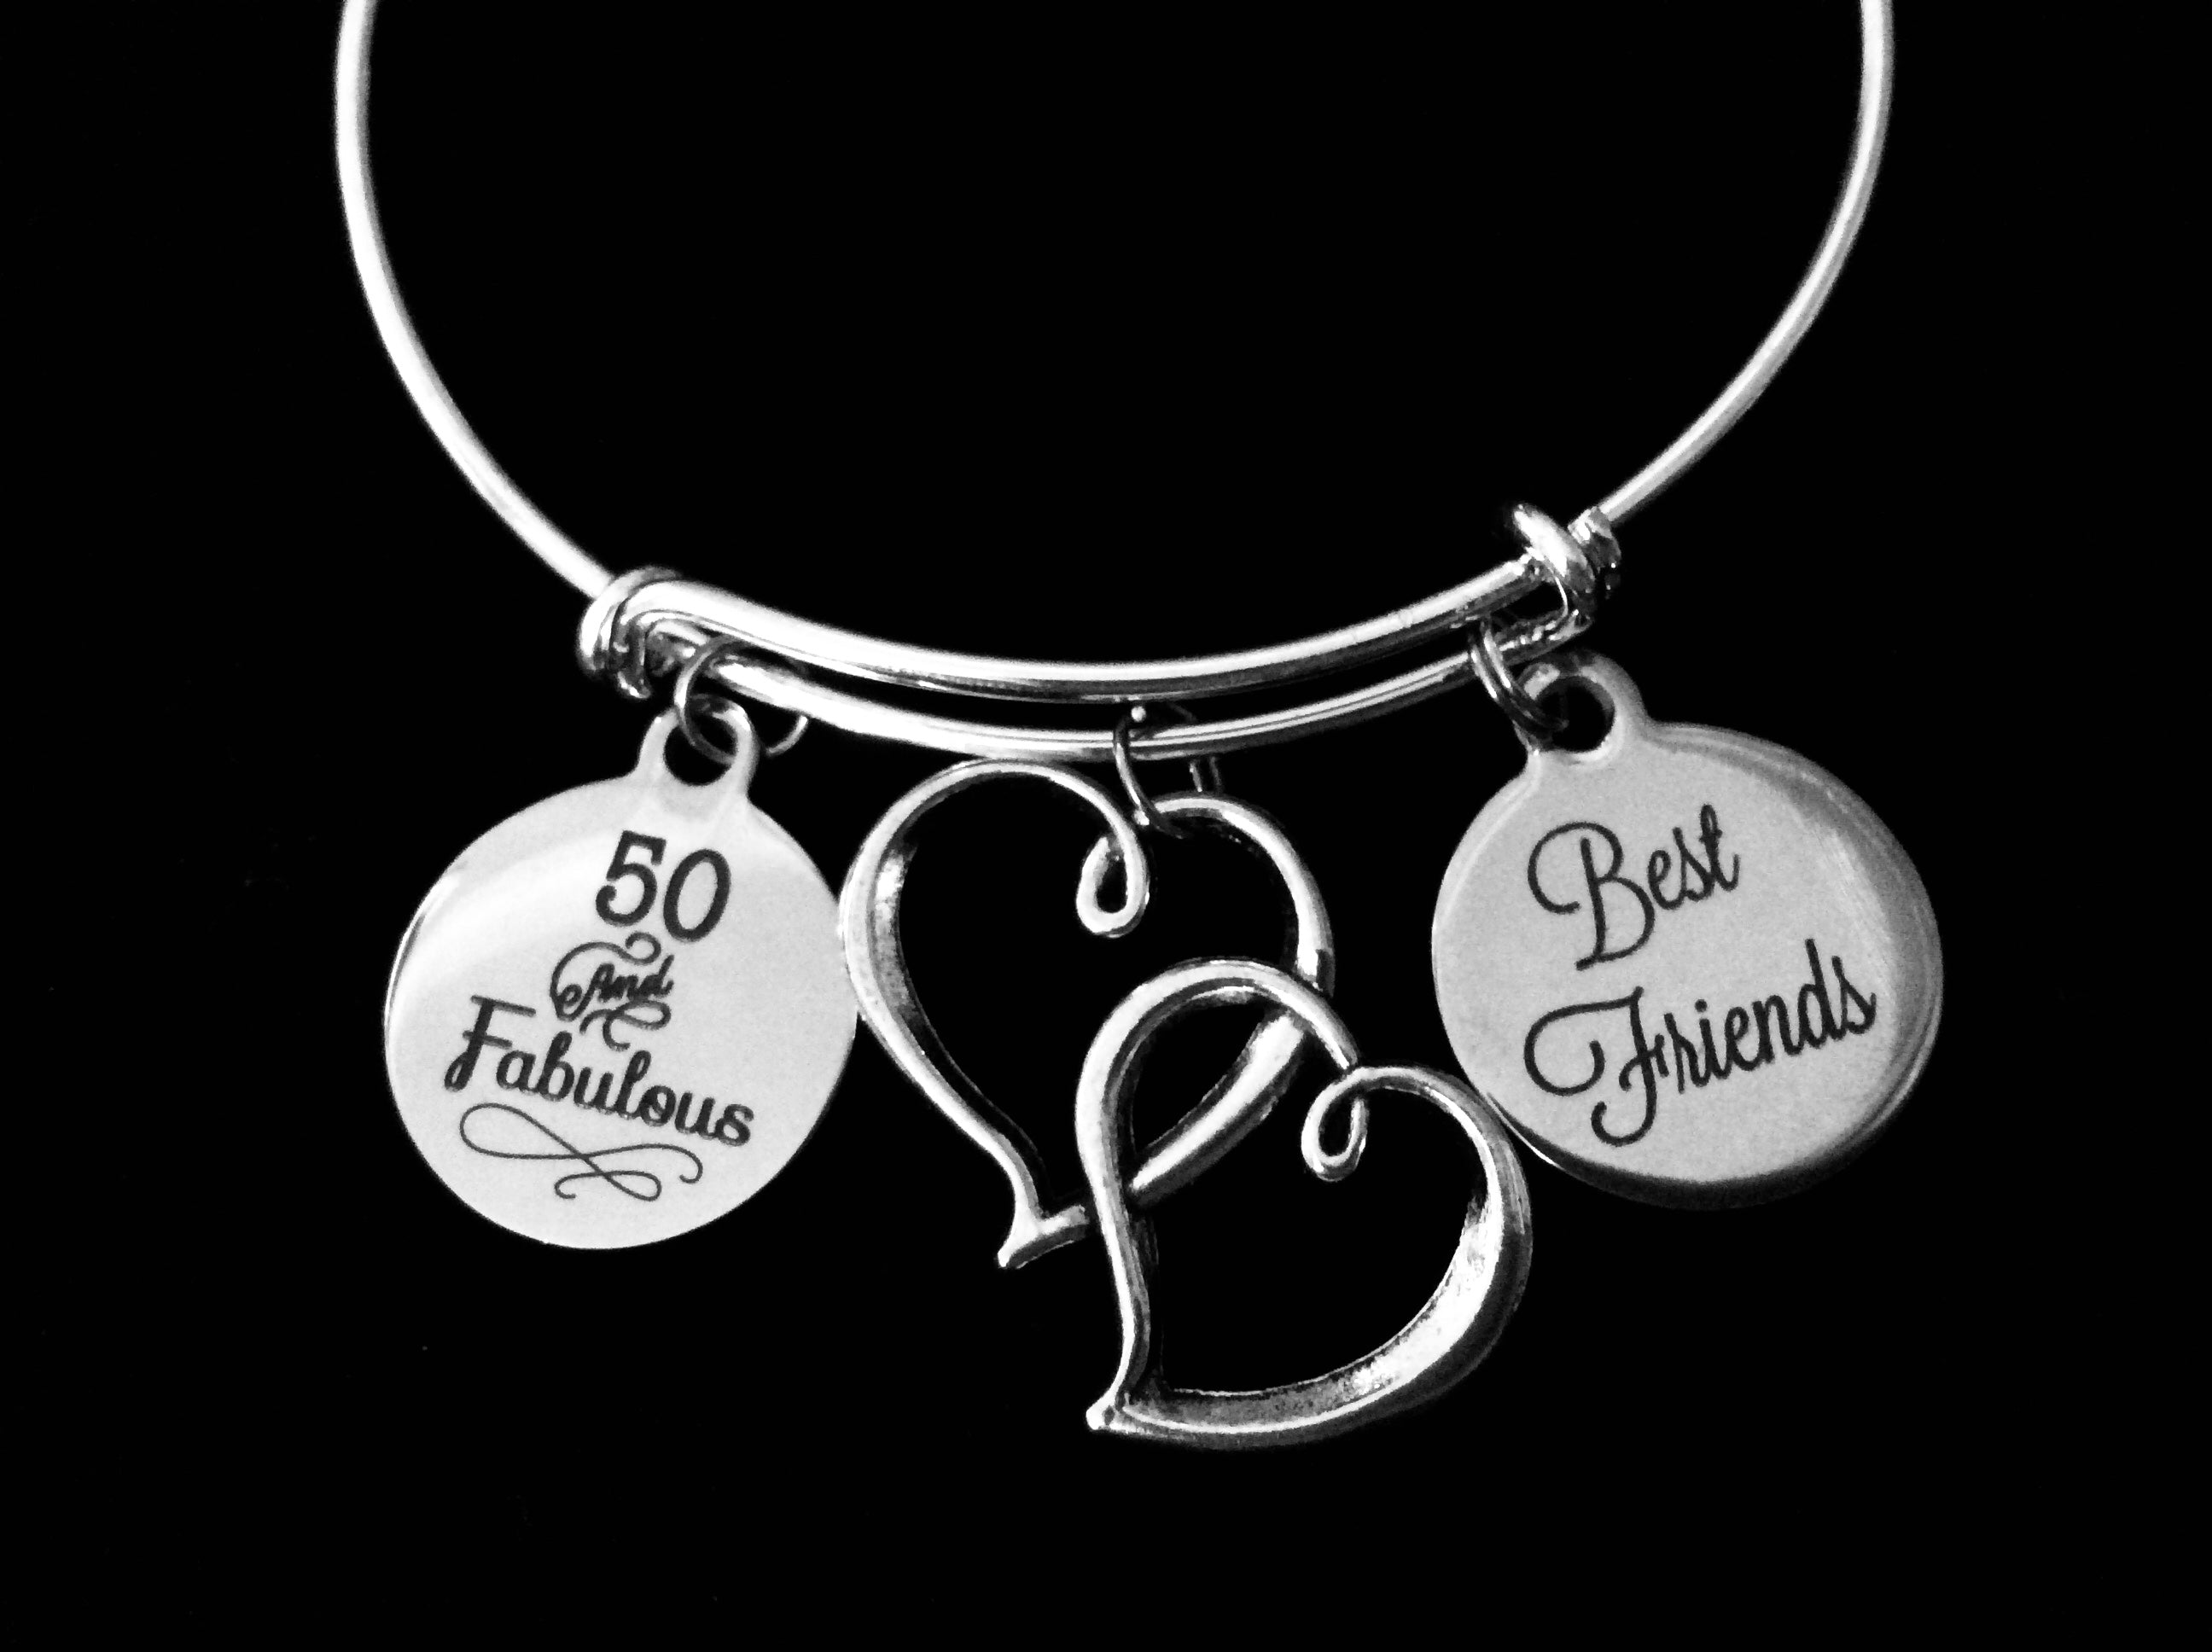 Best Friends Fabulous And Fifty 50th Birthday Jewelry Adjustable Charm